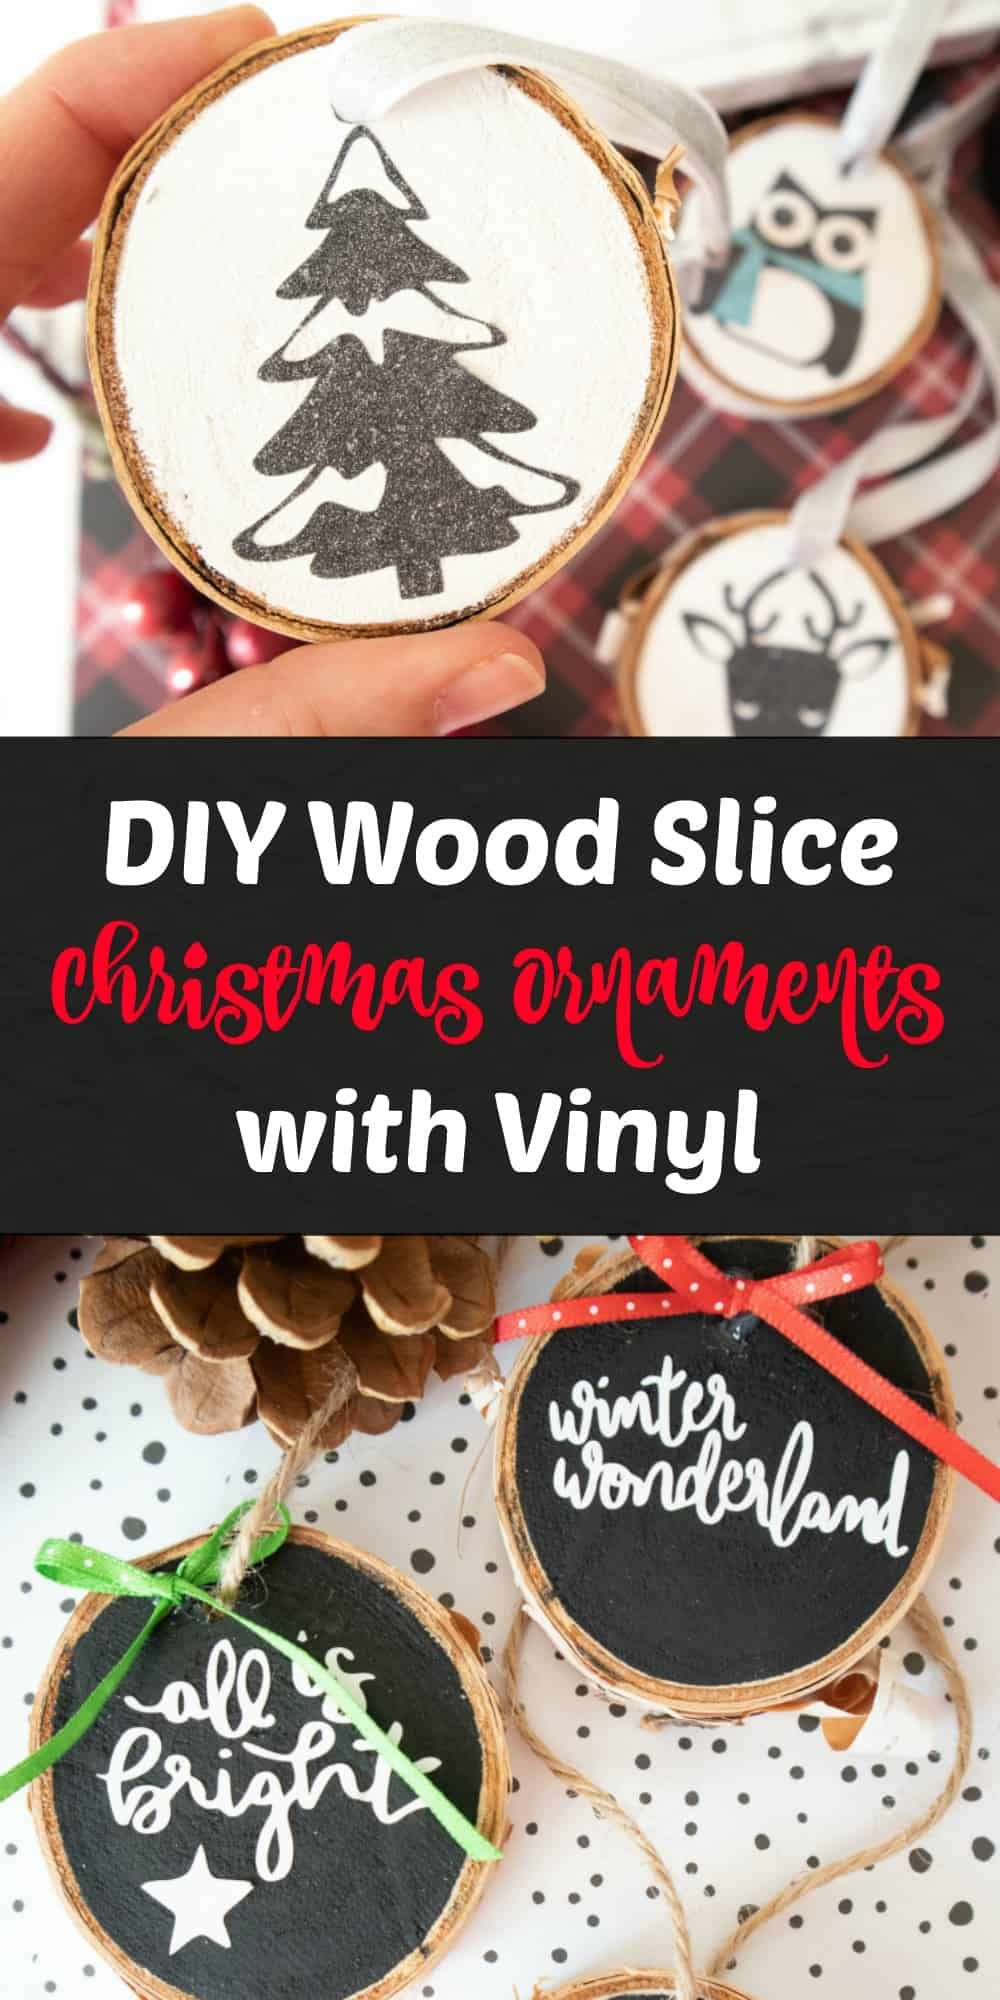 How to Make Wood Slice Ornaments with Vinyl in 2020 Easy